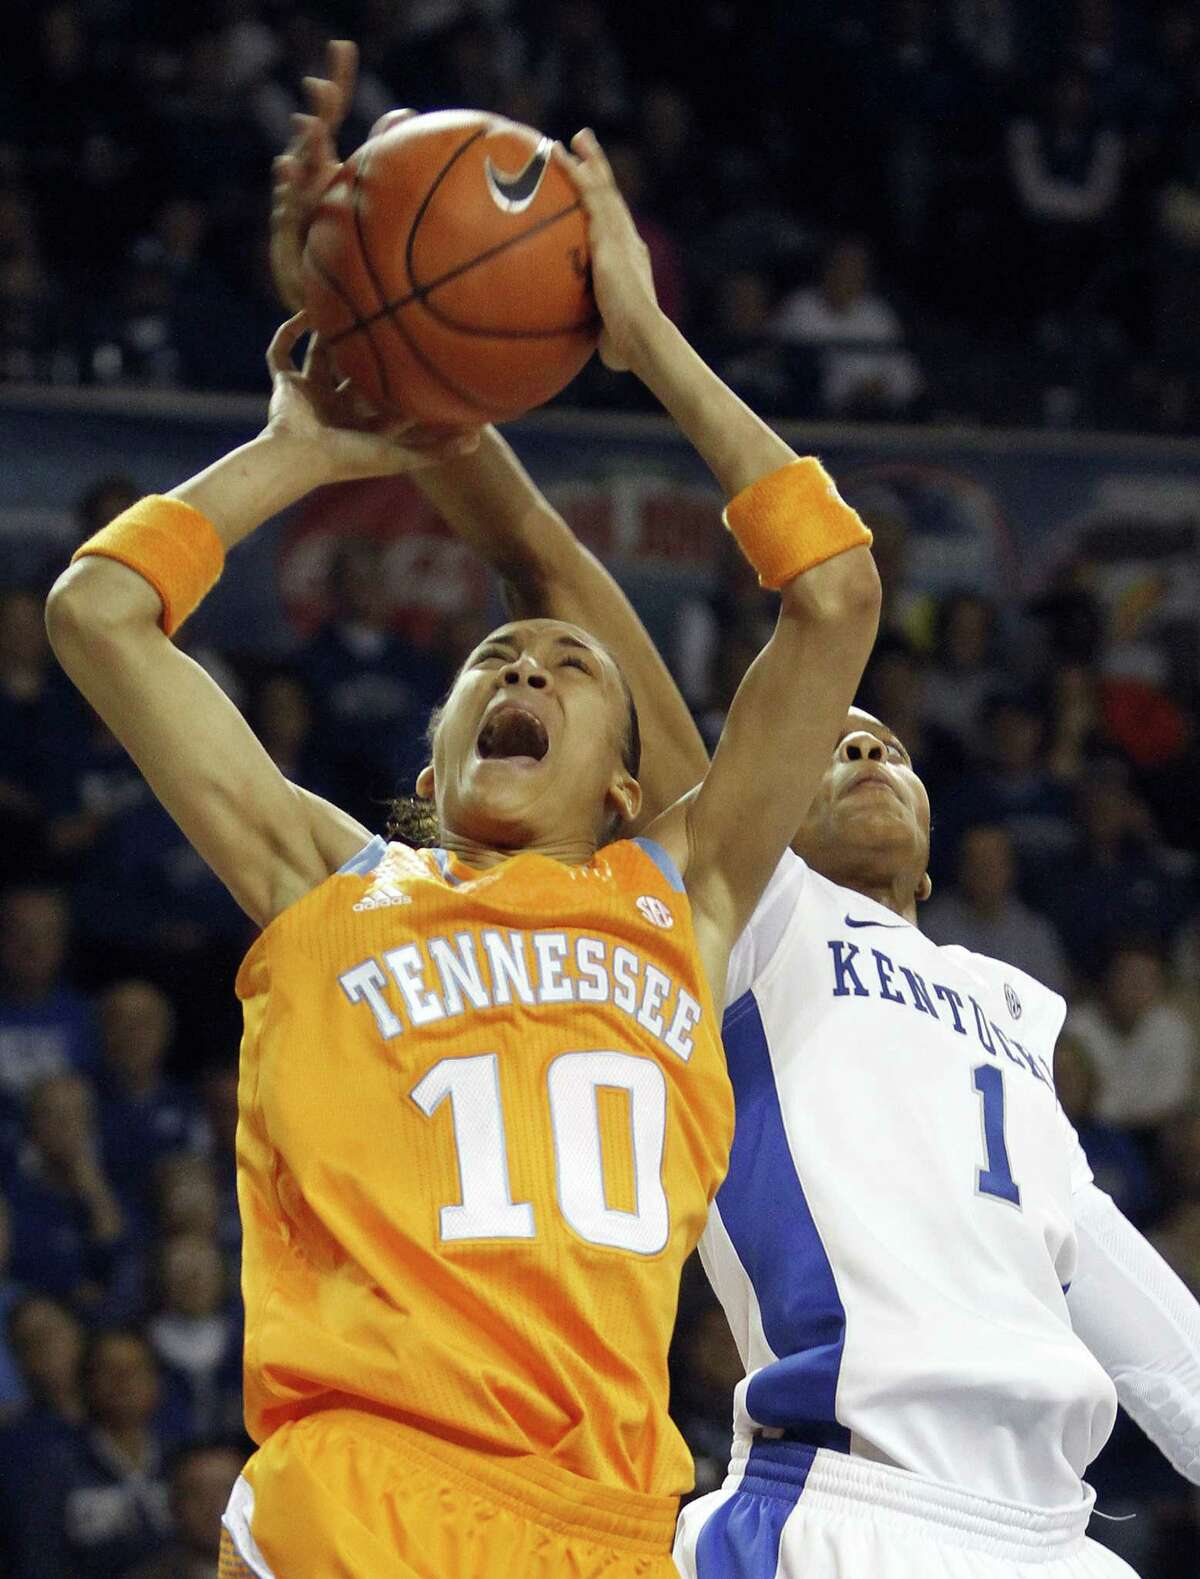 Former Steele standout Meighan Simmons (left), who led Tennessee with 17 points, is rejected by Kentucky's A'dia Mathies in the second half.